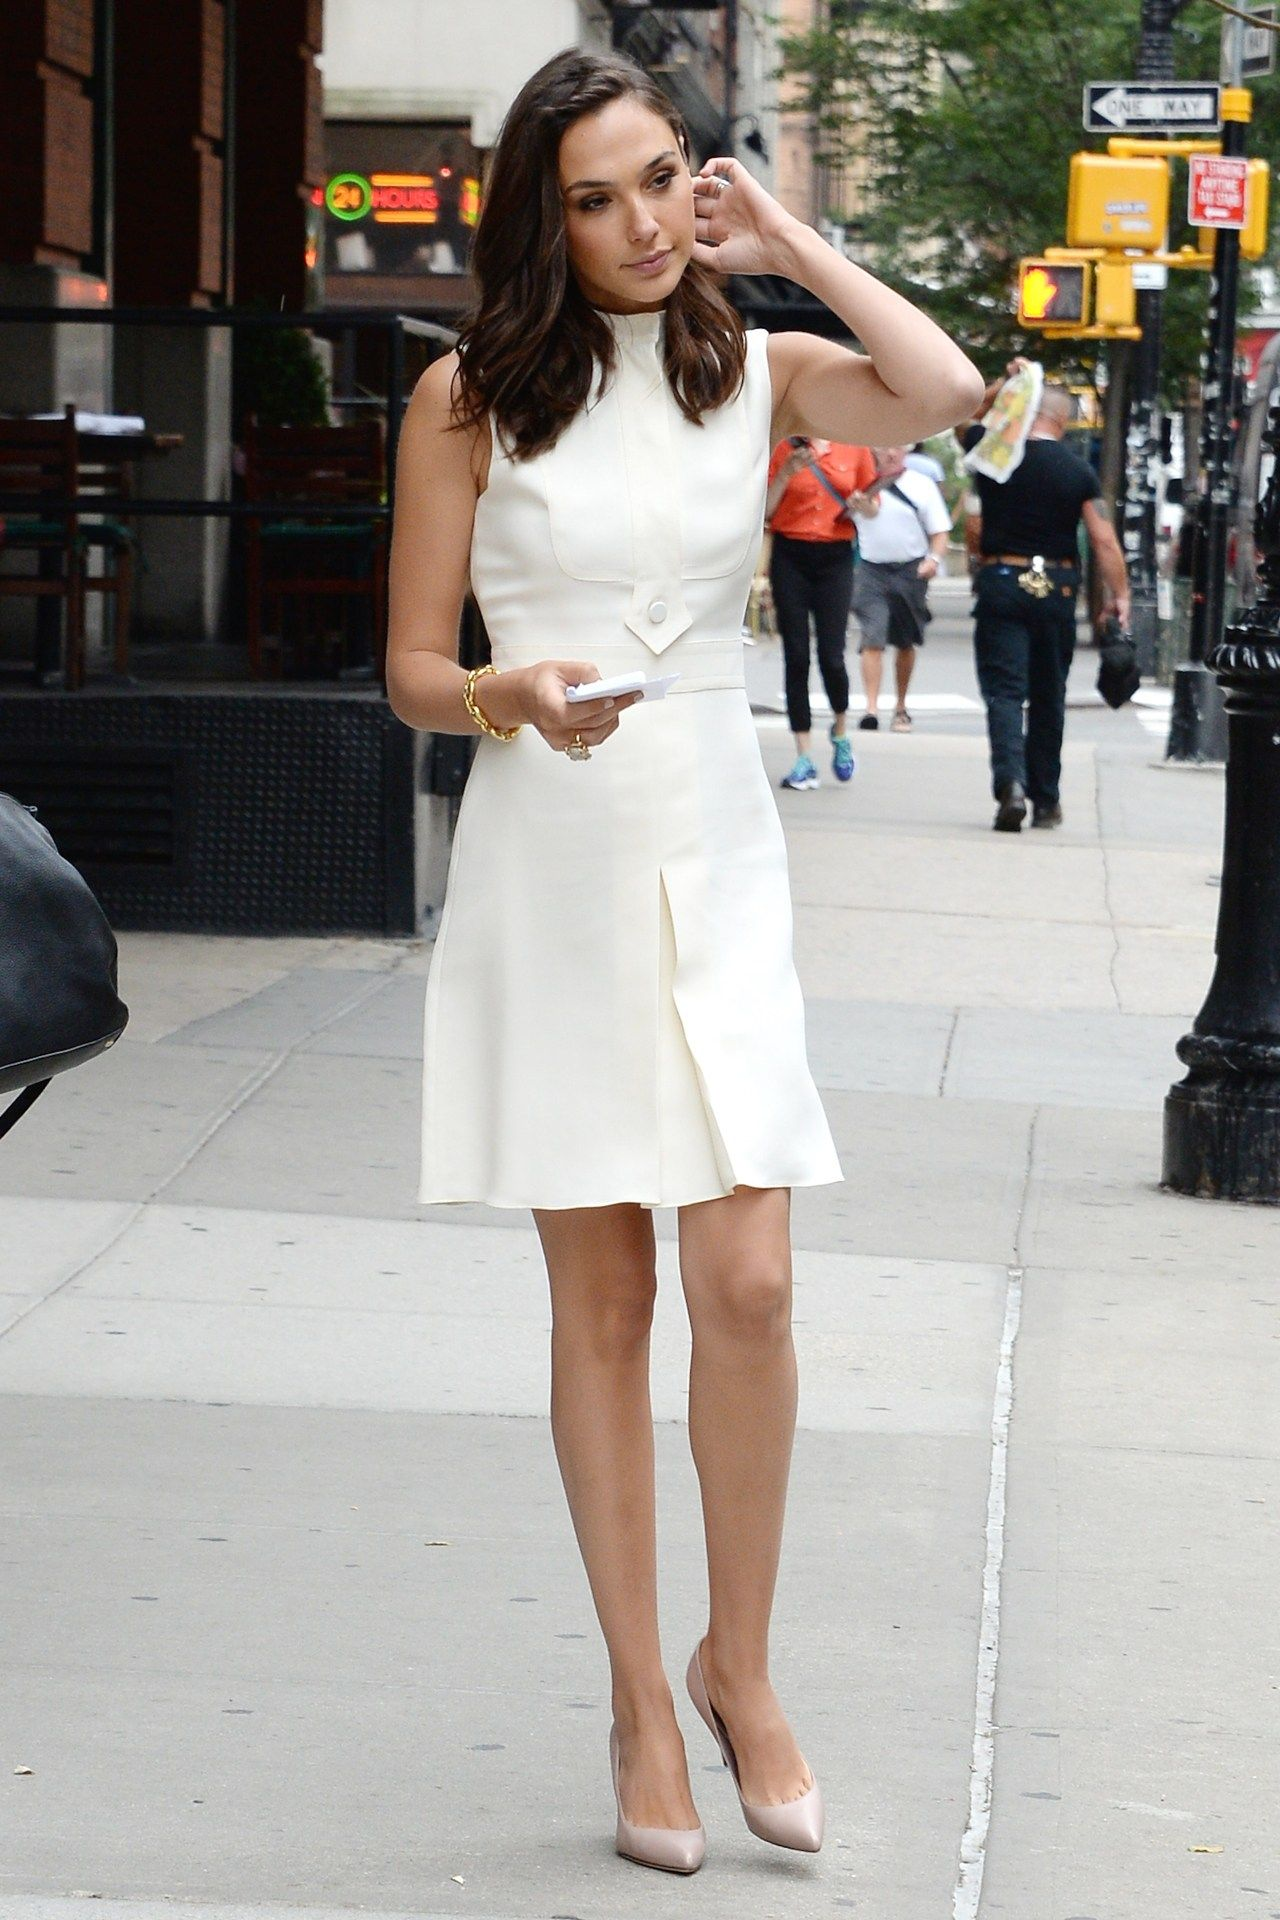 Gal Gadot wearing all white with nude pumps street fashion www.jserene.com